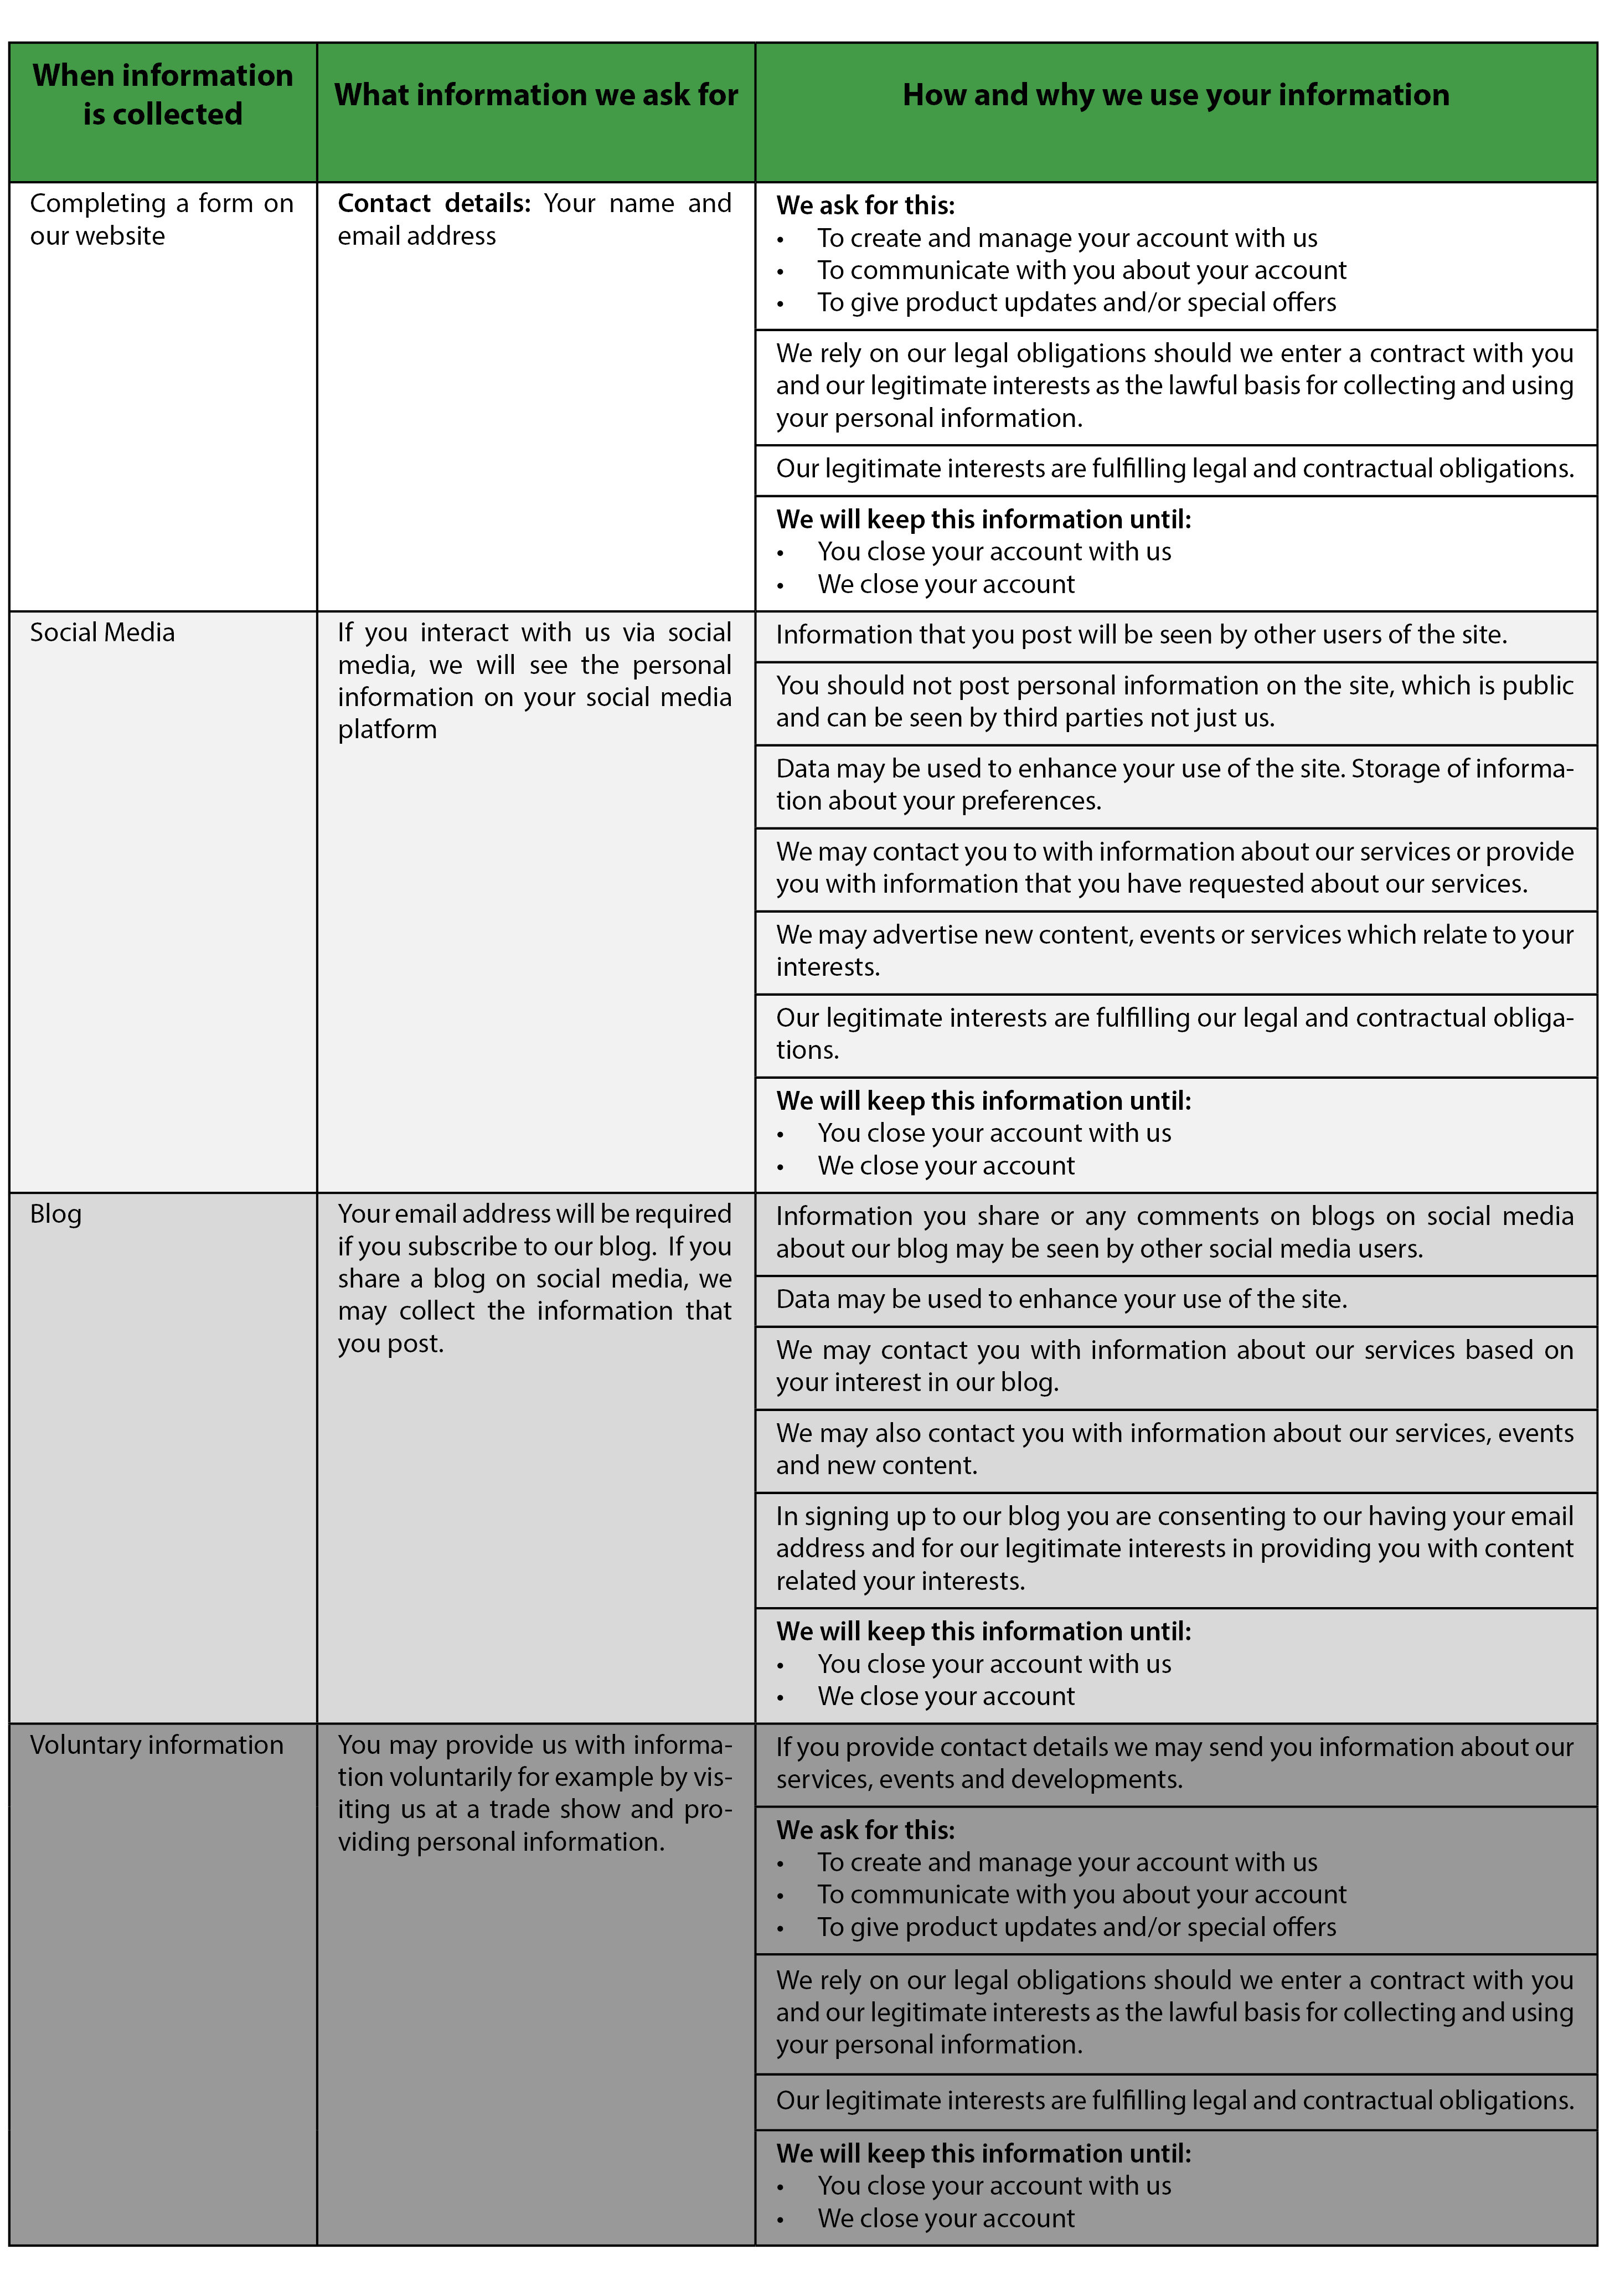 Privacy-Policy-Table.jpg#asset:26220